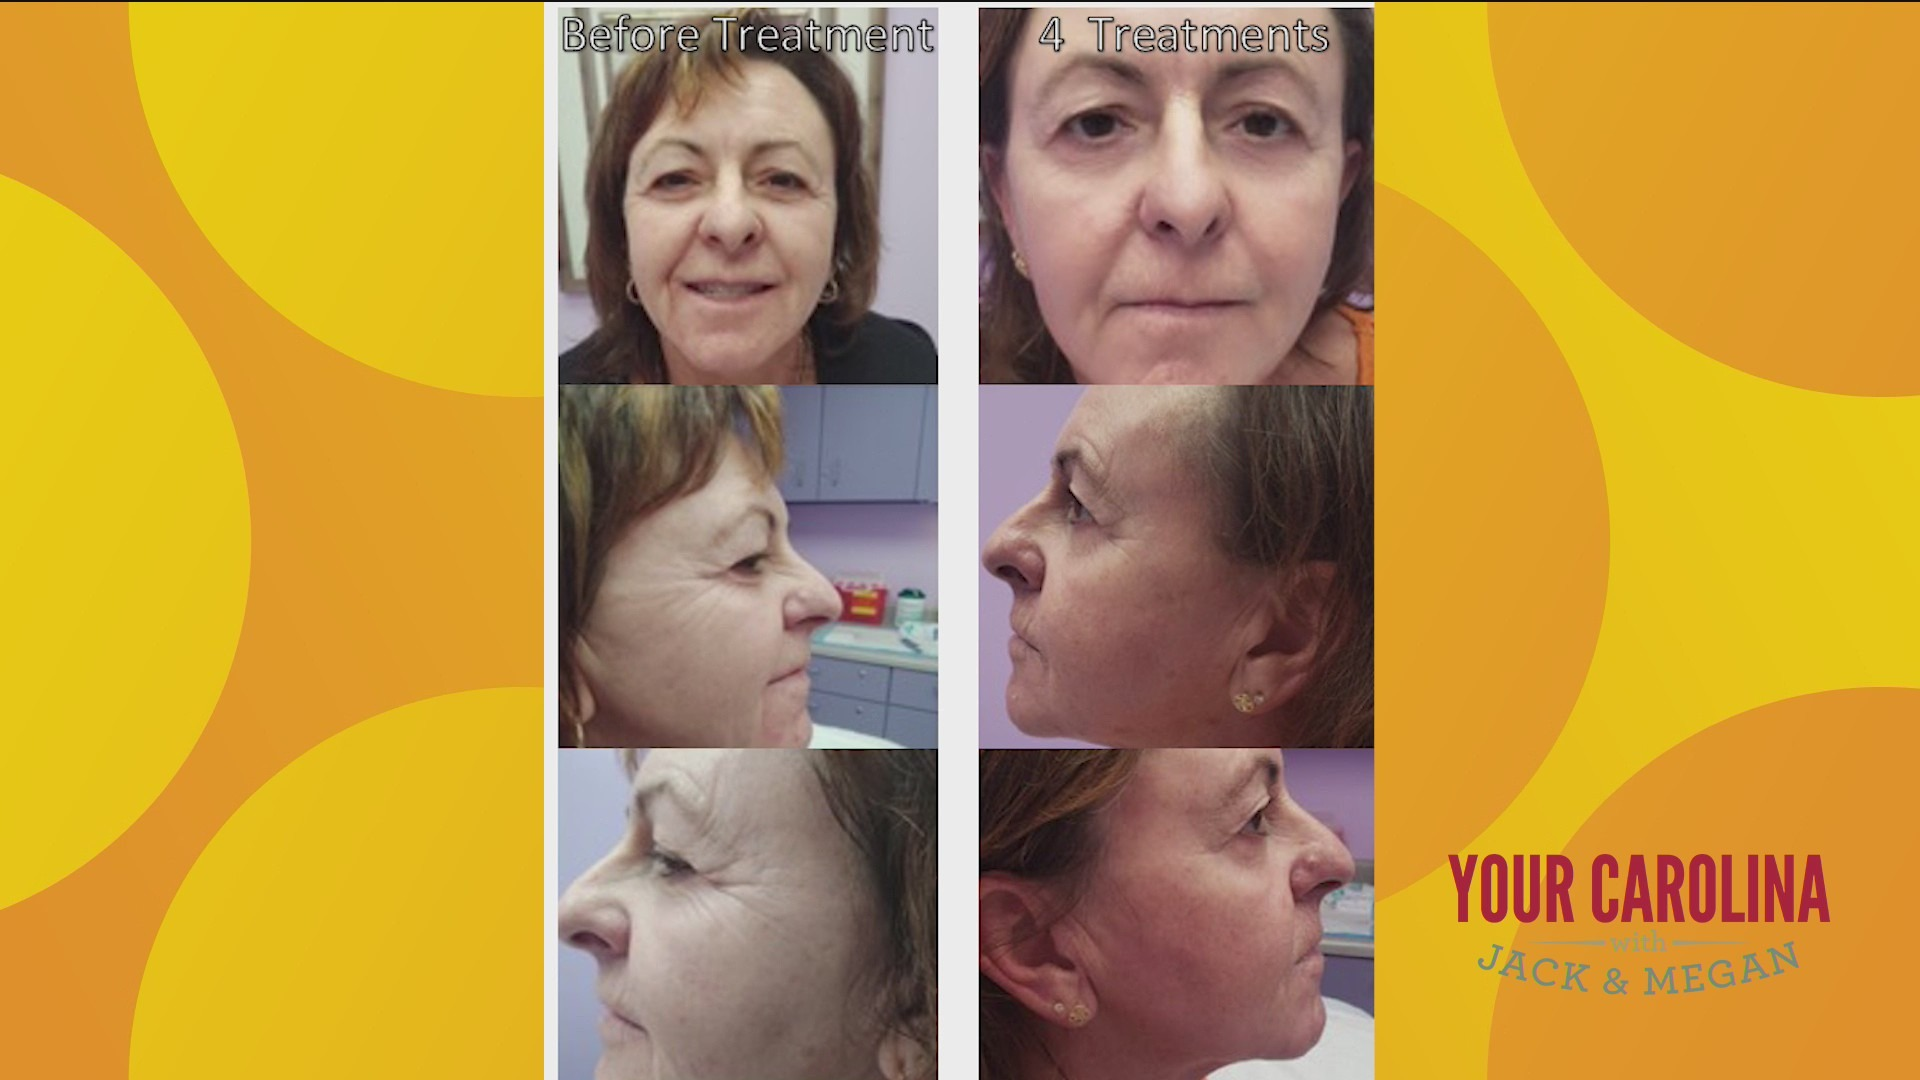 Wellness By Design - Rejuvenate Your Appearance